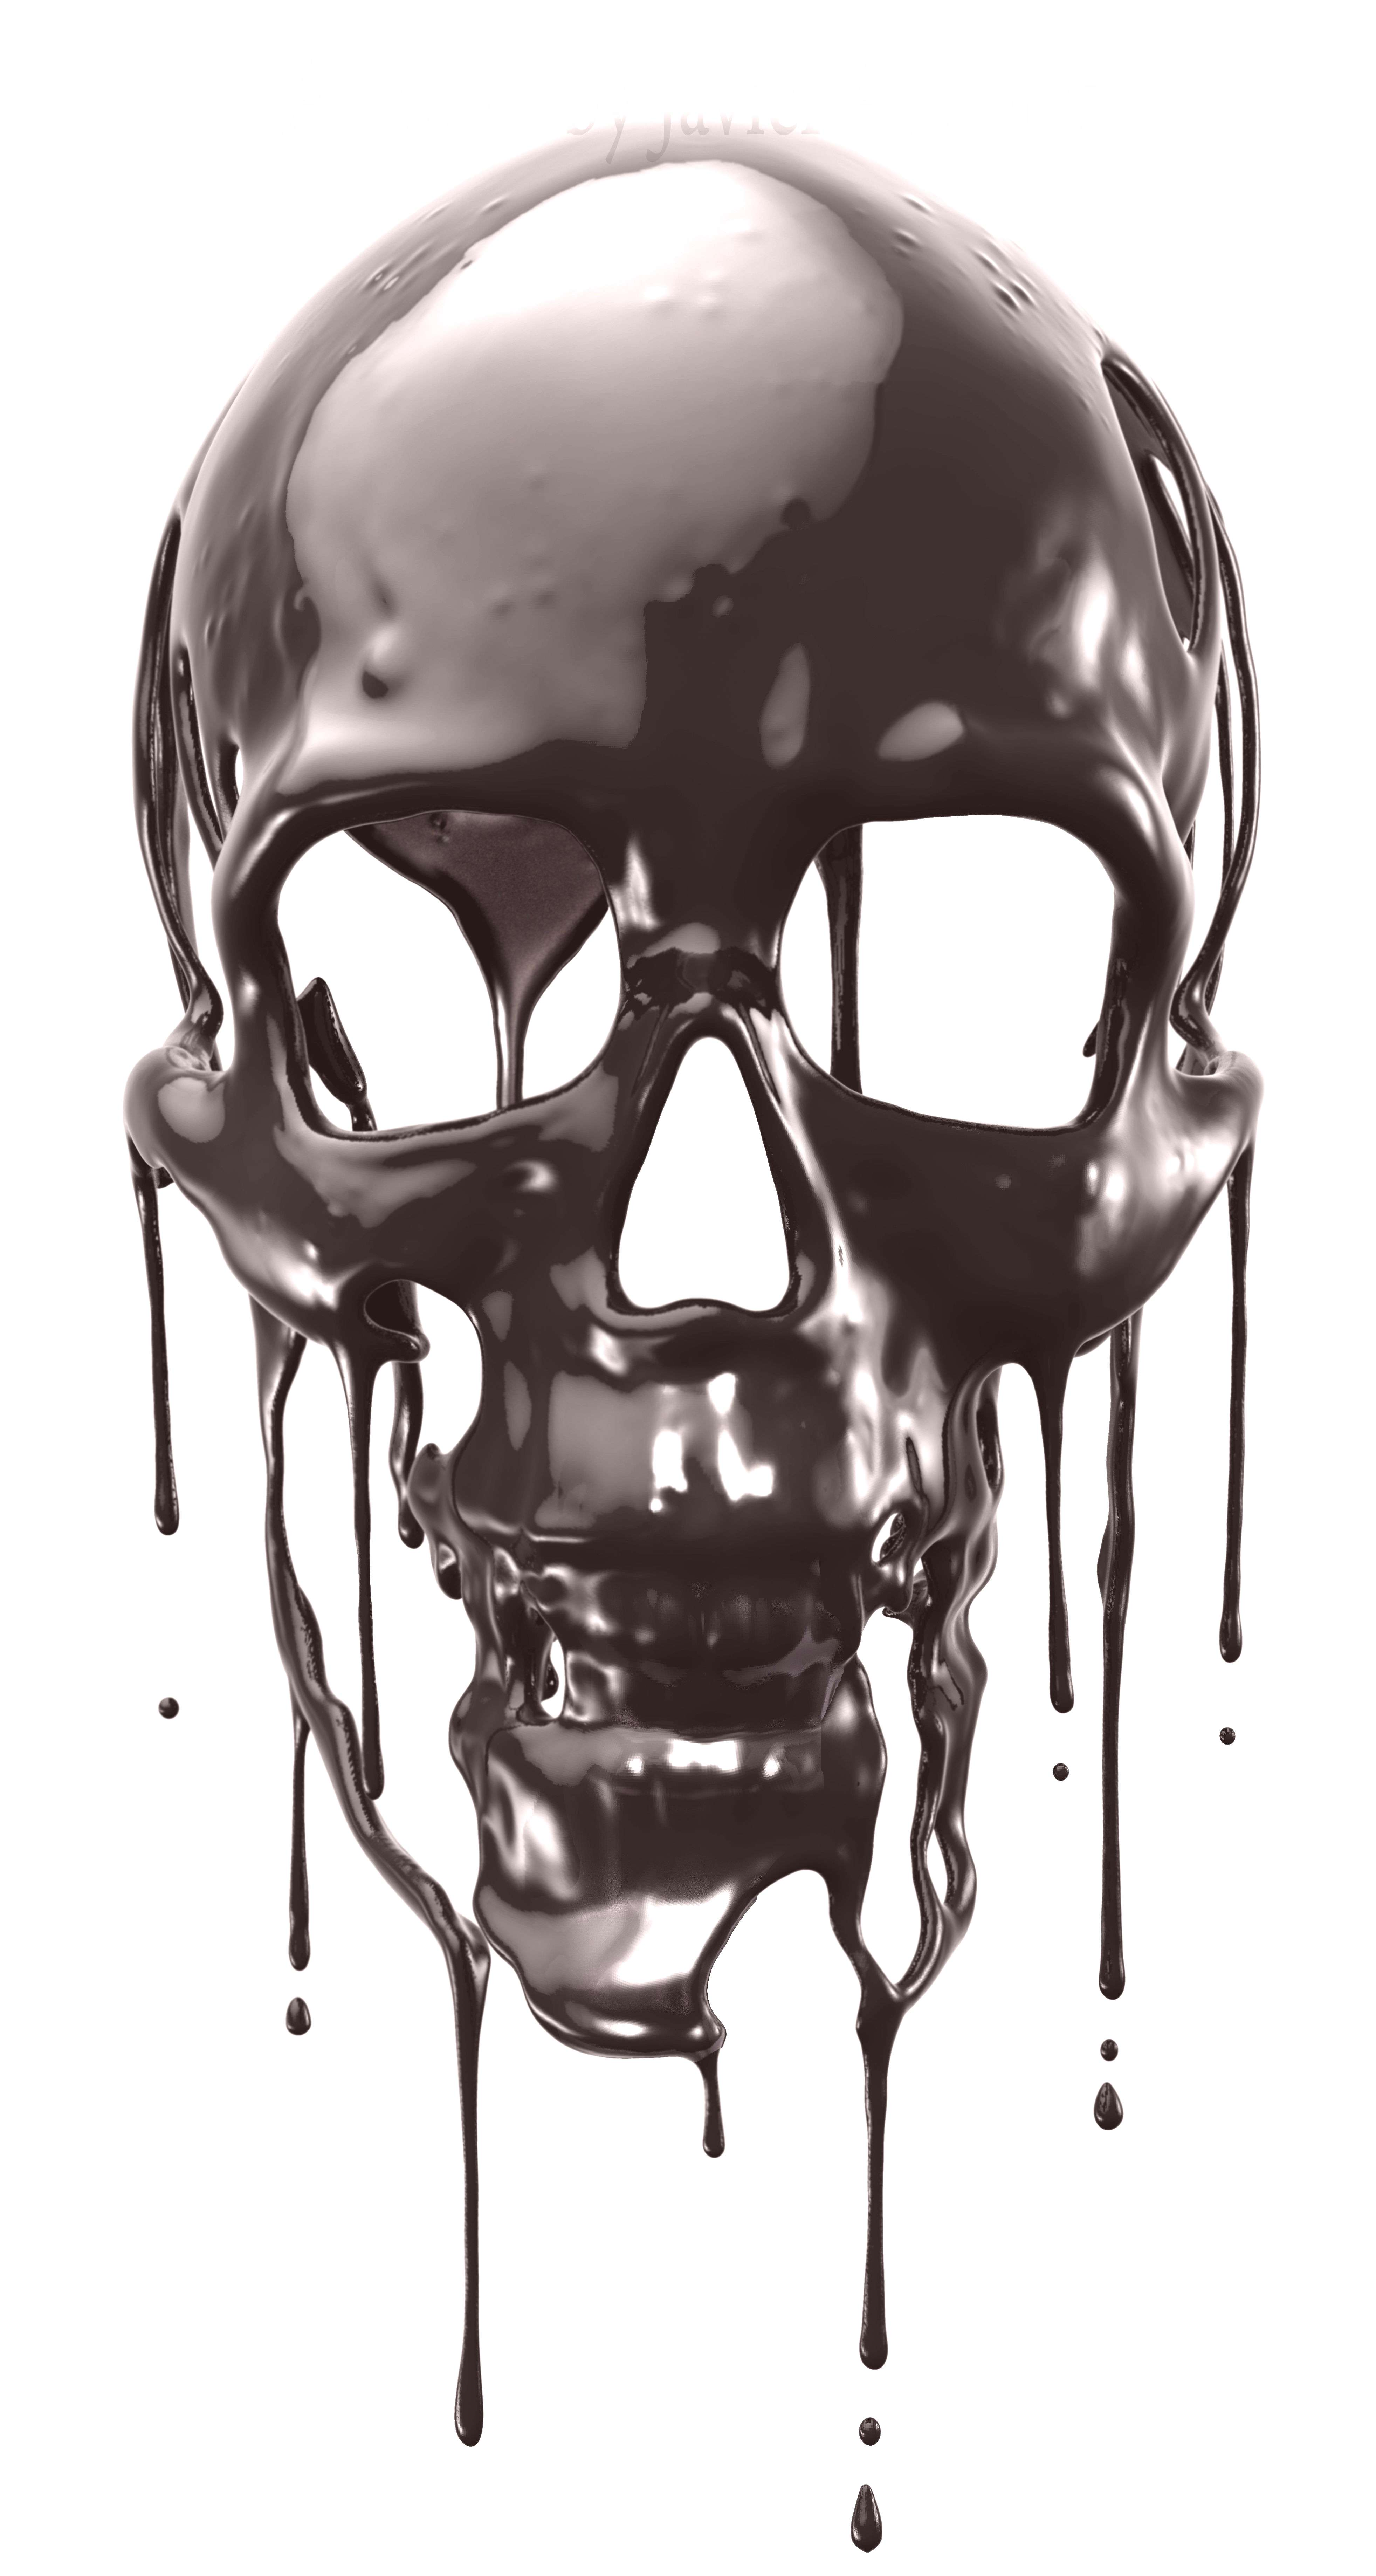 Dripping skull Rendered using Zbrush, then finalized in Photoshop by Javier Antu... - Dripping sku